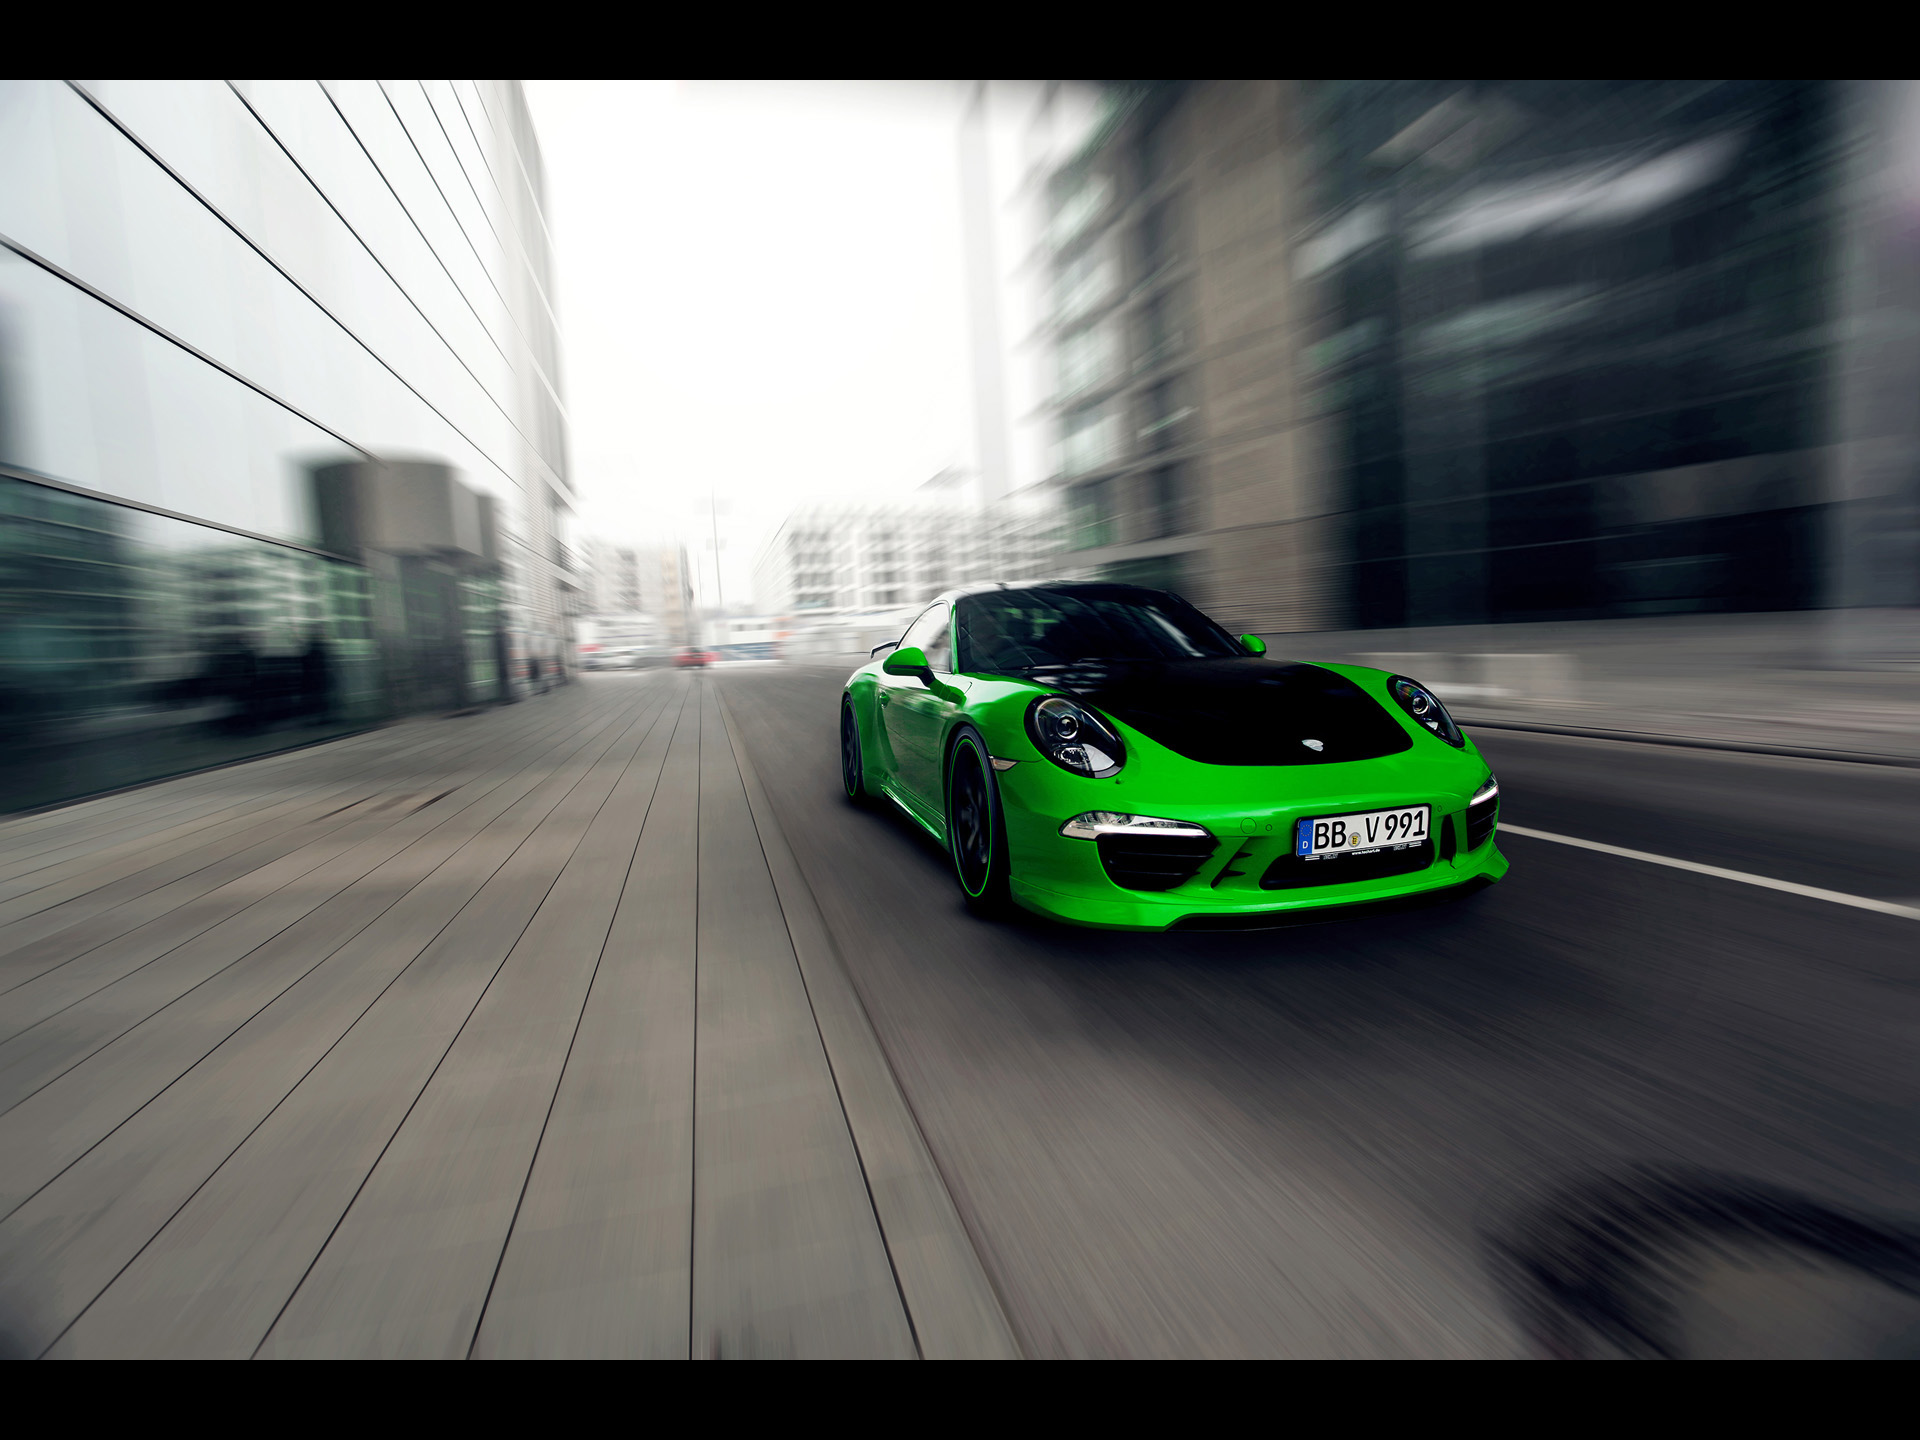 click to free download the wallpaper--World-Famous Cars Image, Green Porsche 911 in the Run, Combining Tech and Art 1920X1440 free wallpaper download